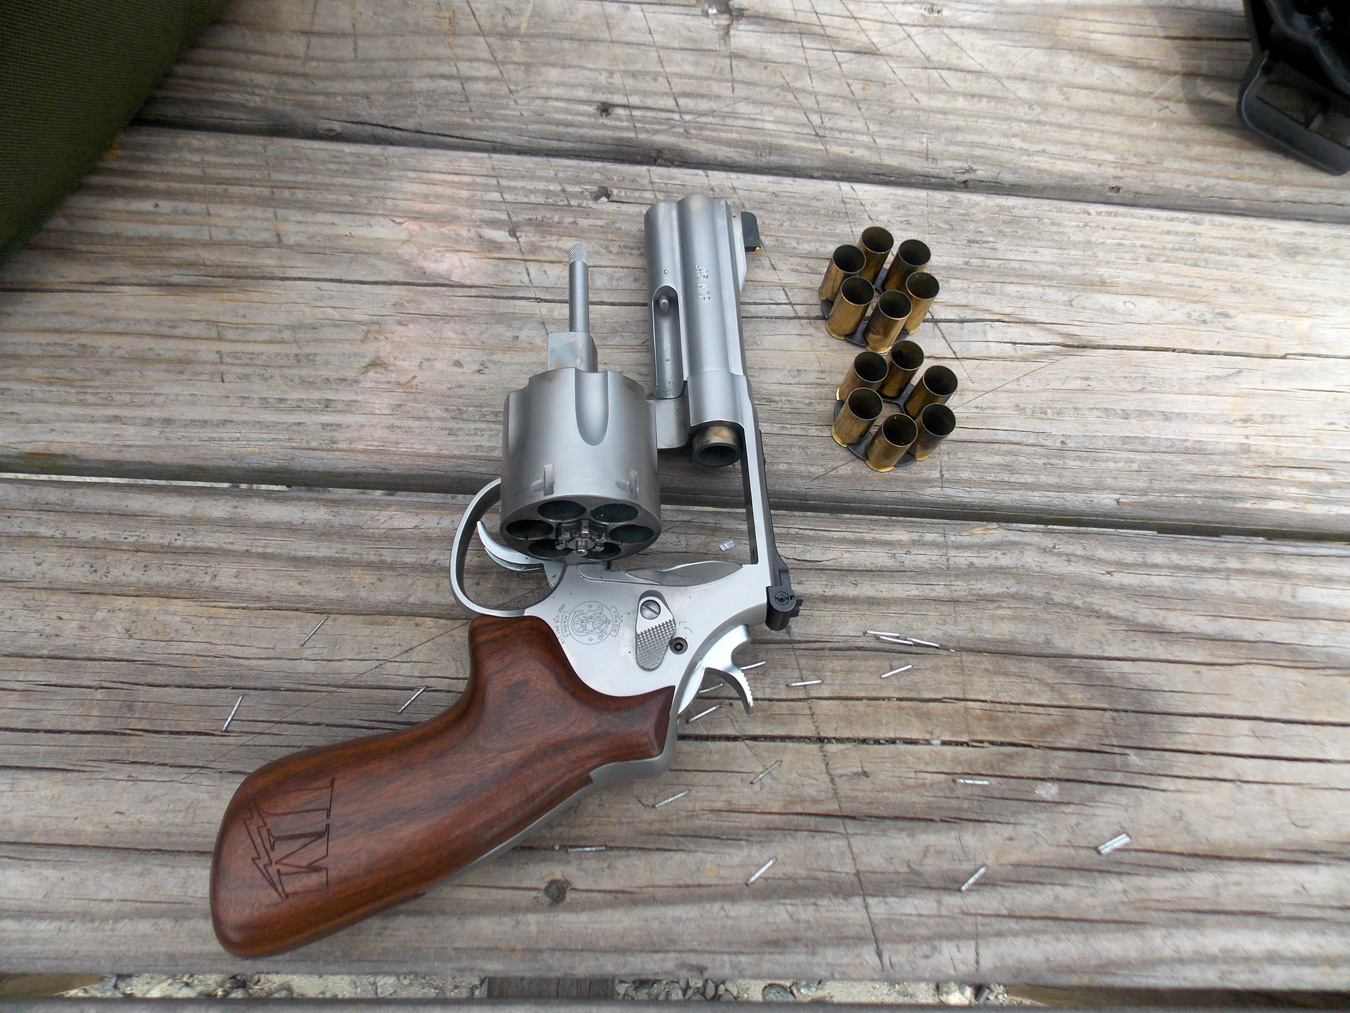 Smith and Wesson Model 625 JM with cylinder open with two moon clips filled with empty shells